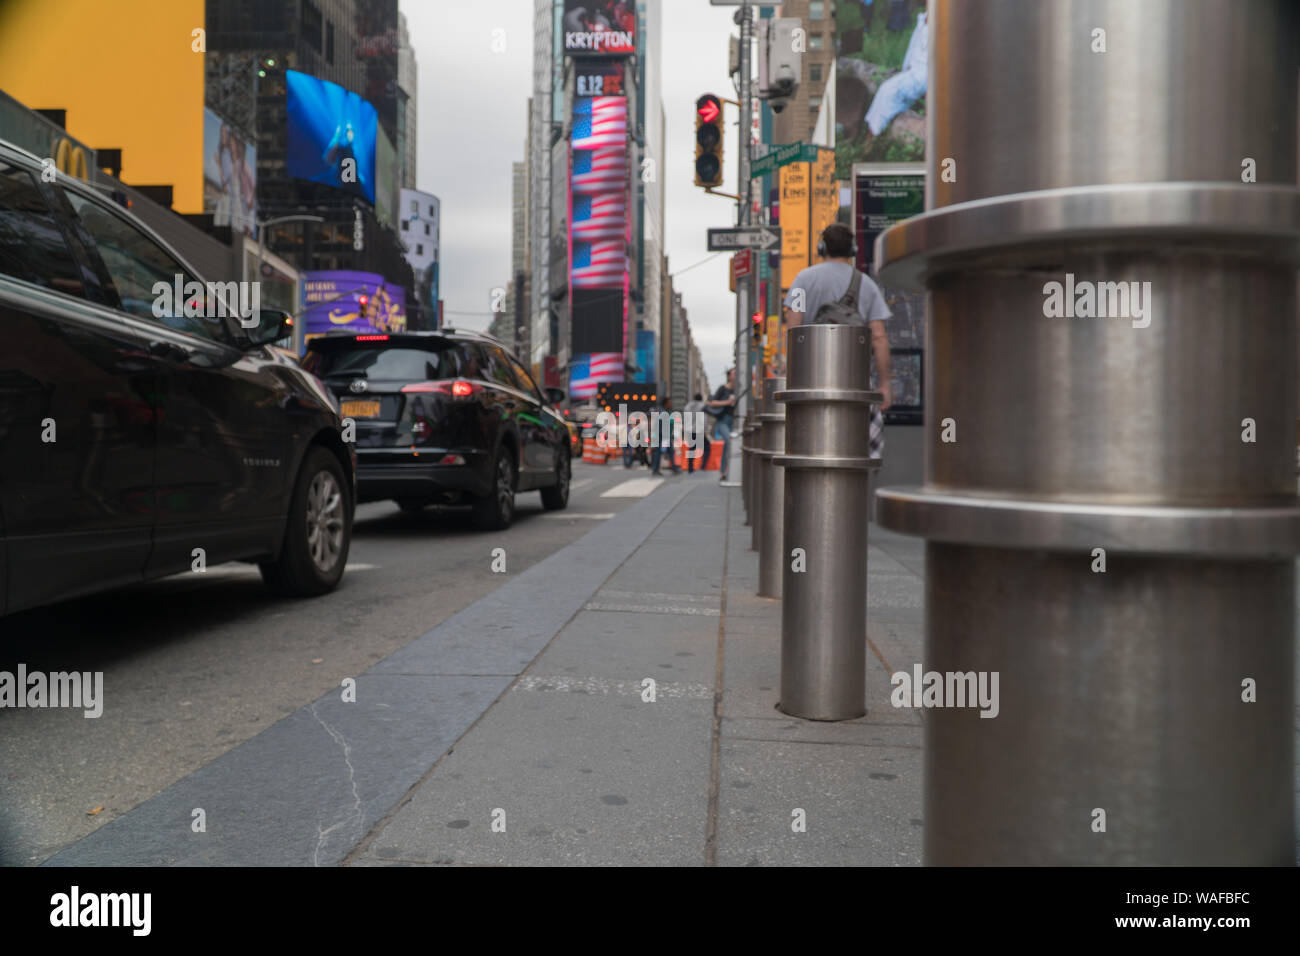 Car Road Stock Photos & Car Road Stock Images - Page 7 - Alamy